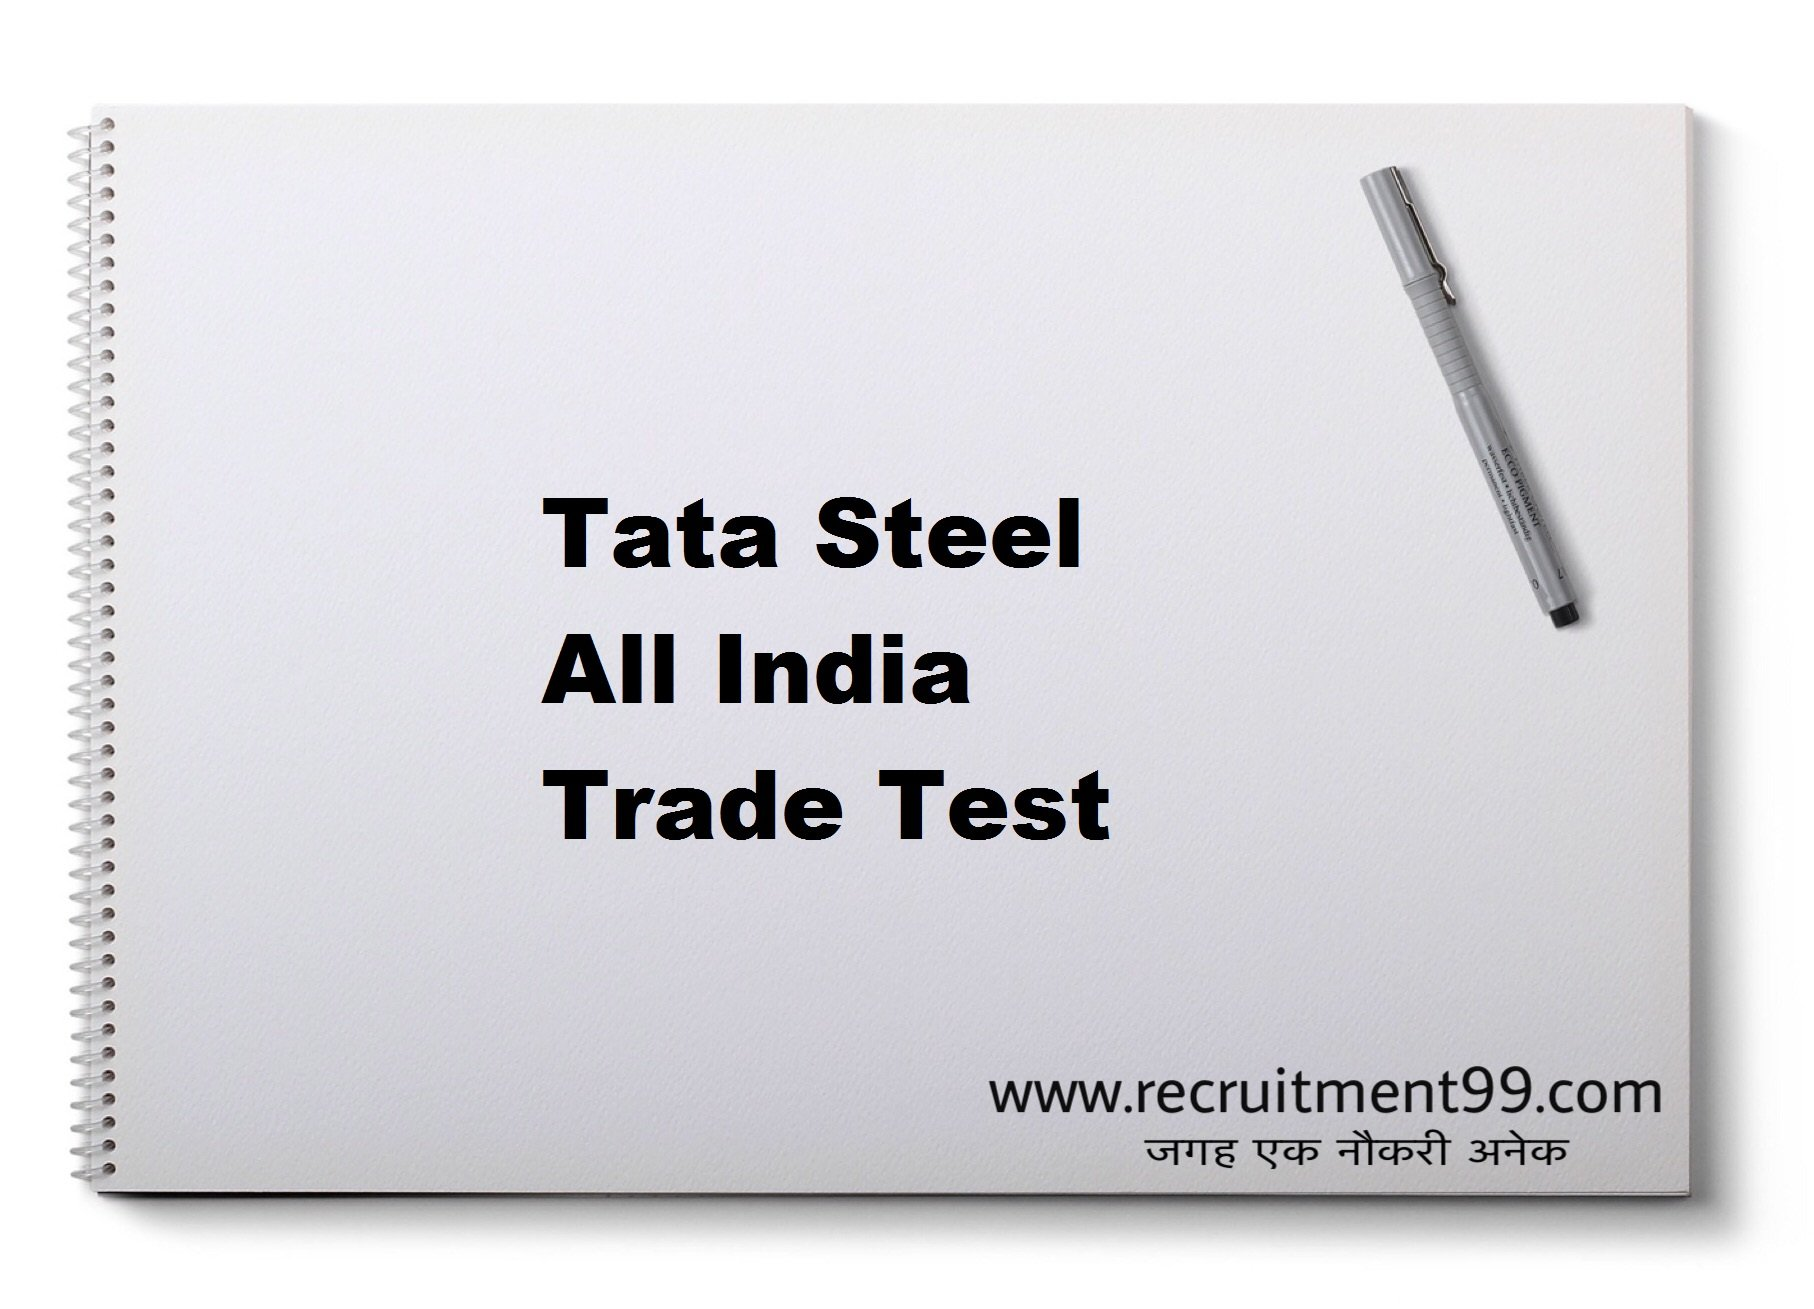 Tata Steel All India Trade Test Recruitment Admit Card Result 2018